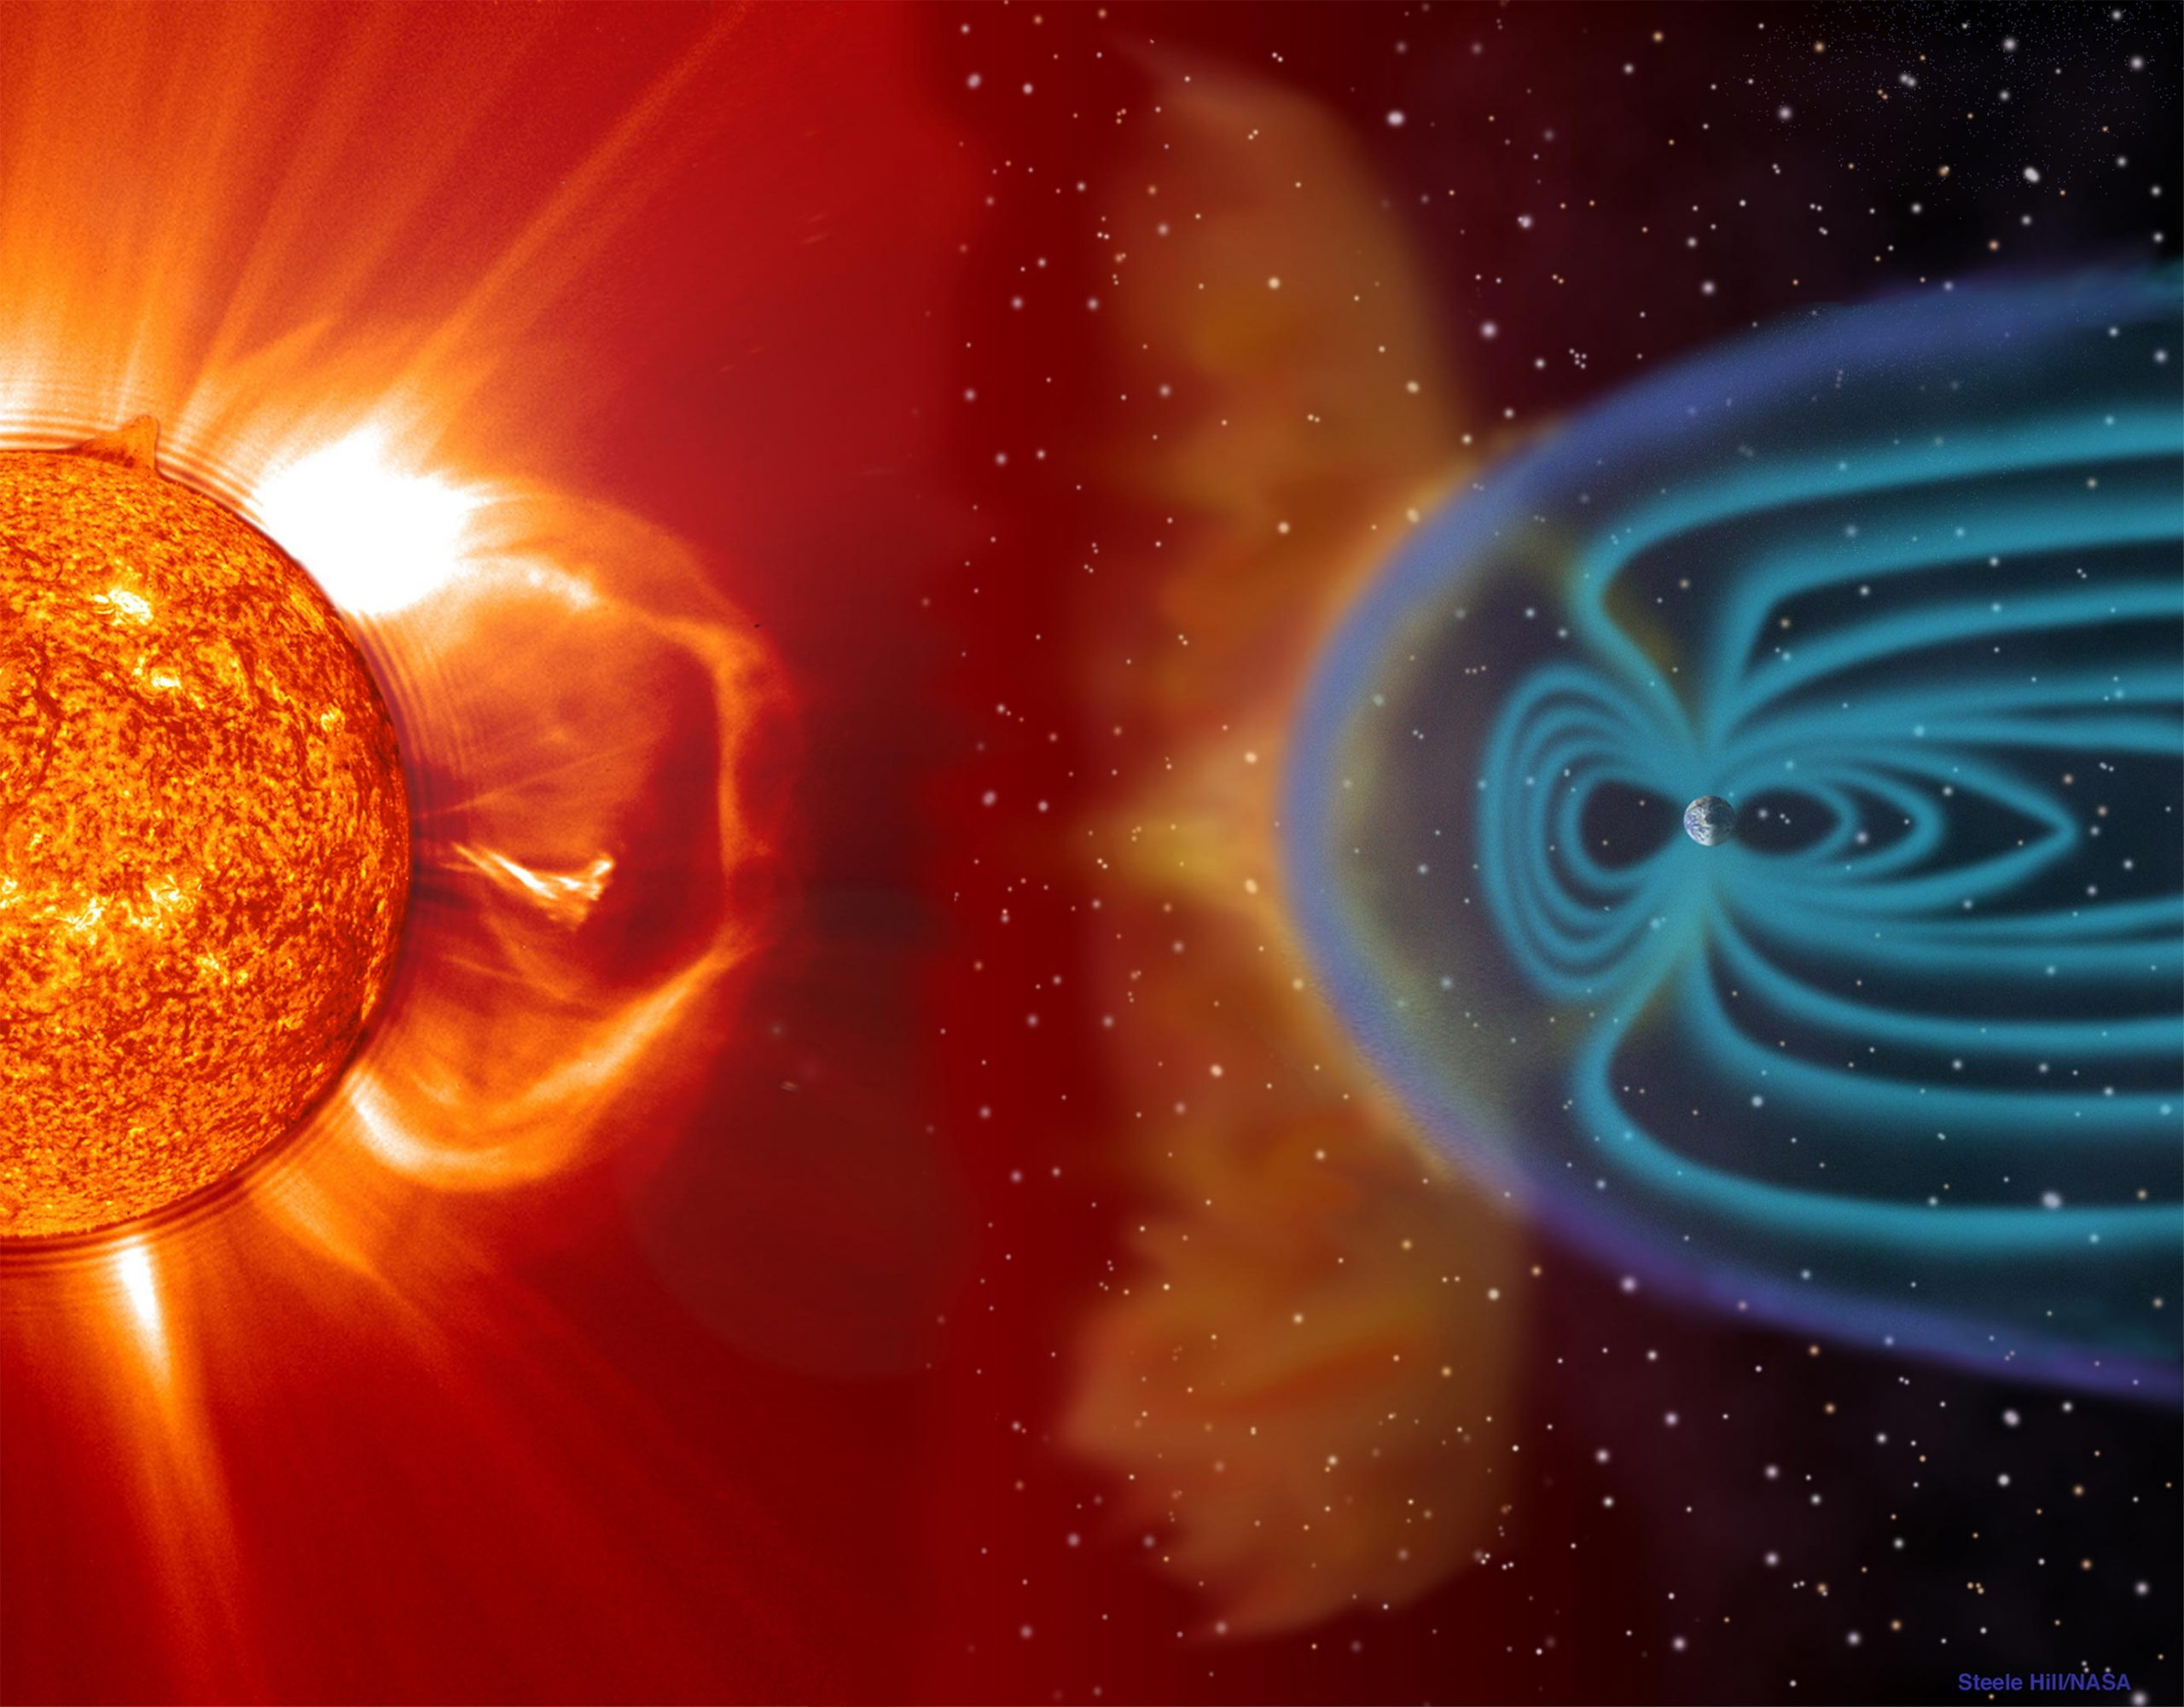 Planetary Shields Will Buckle Under Furious Stellar Winds From Their Dying Stars – Nearly Impossible for Life To Survive - SciTechDaily